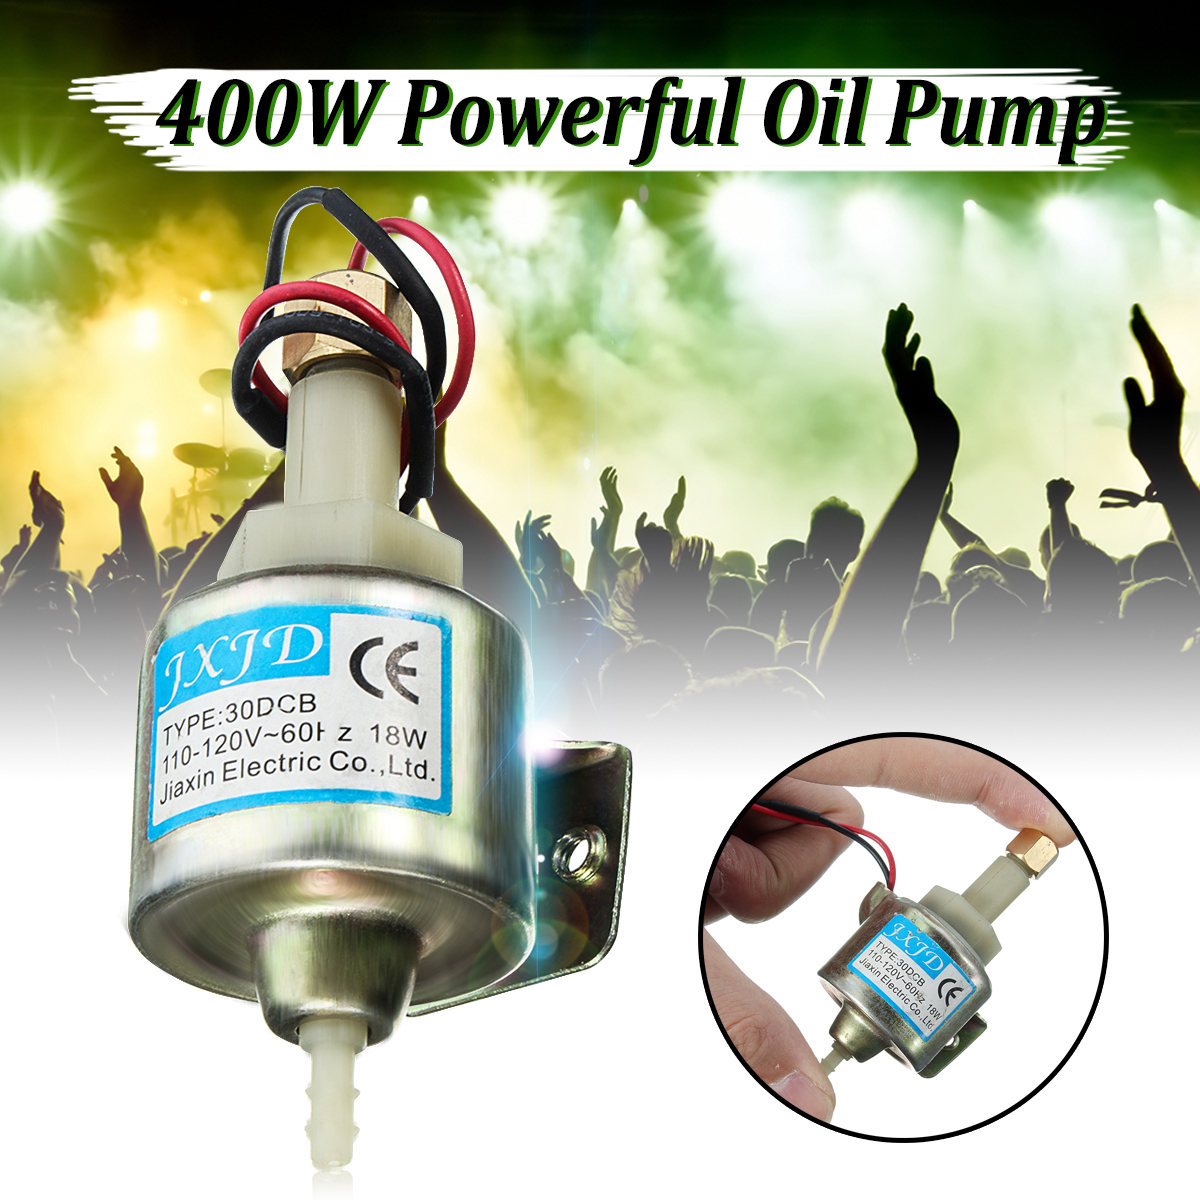 40 30 DCB 18W fog machine pump 400w smoke machine dj equipment Professional stage oil pump